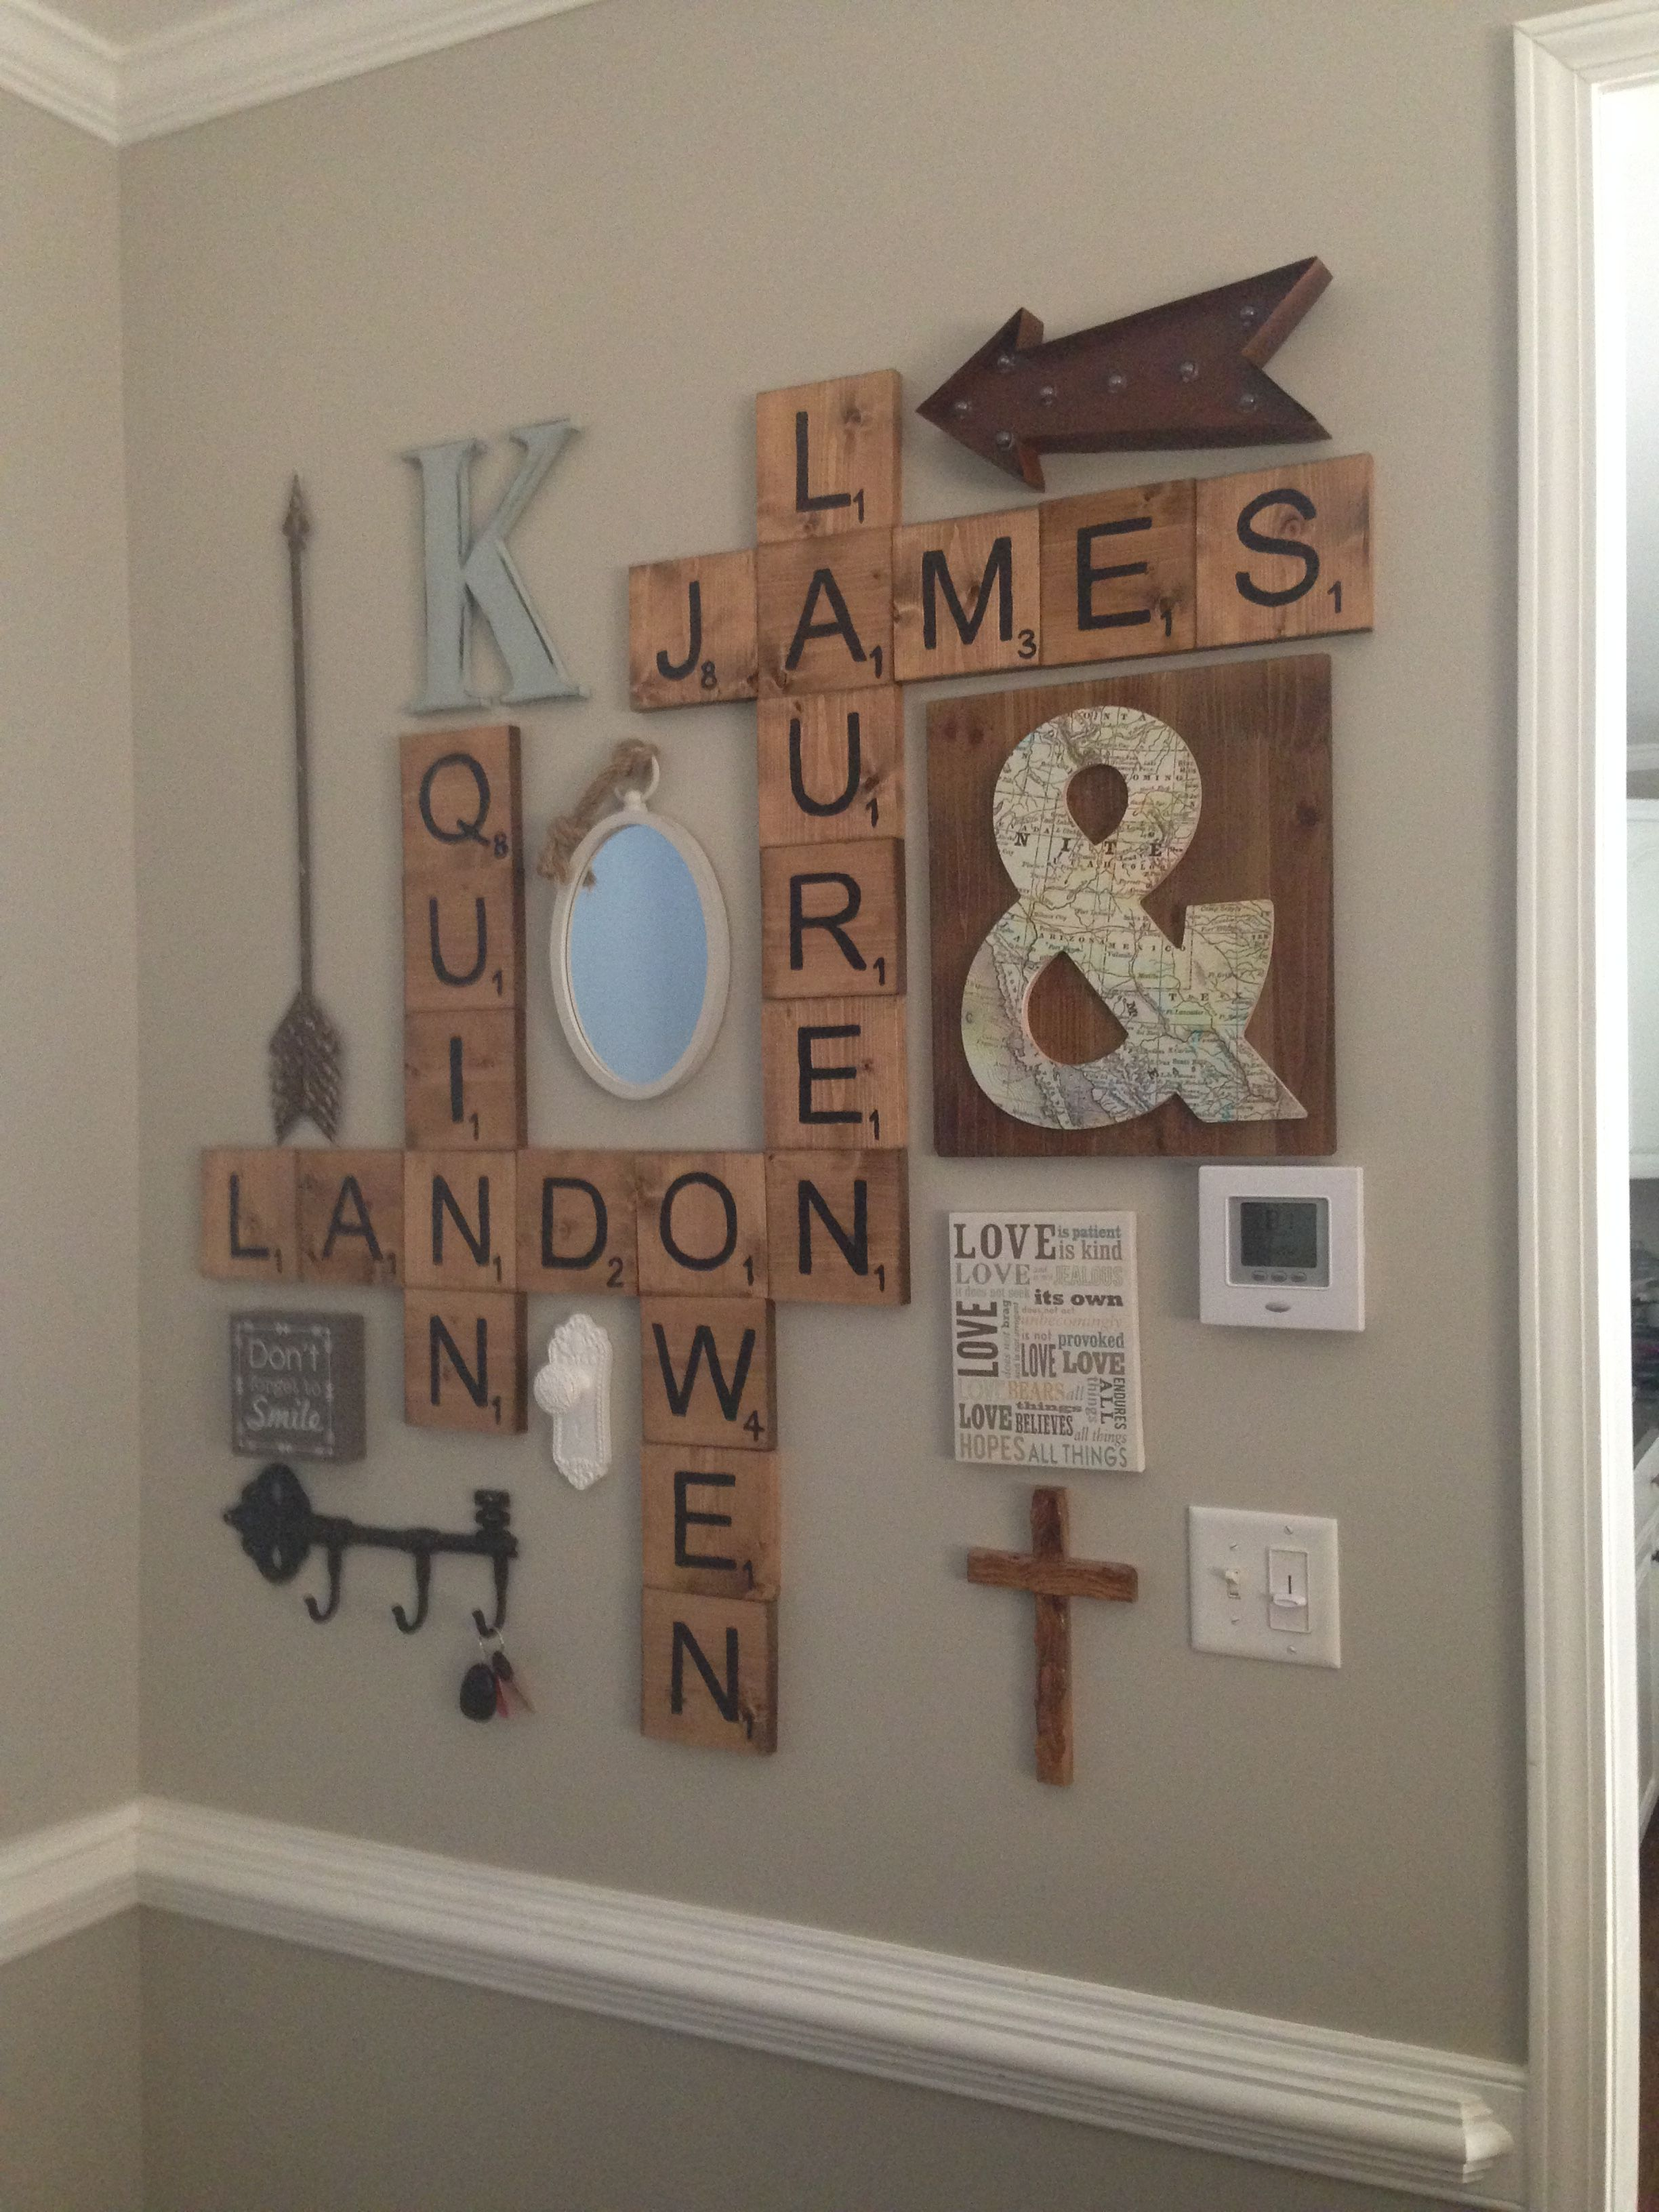 Scrabble Letters Wall Decor | DIY | Pinterest | Wall decor ...